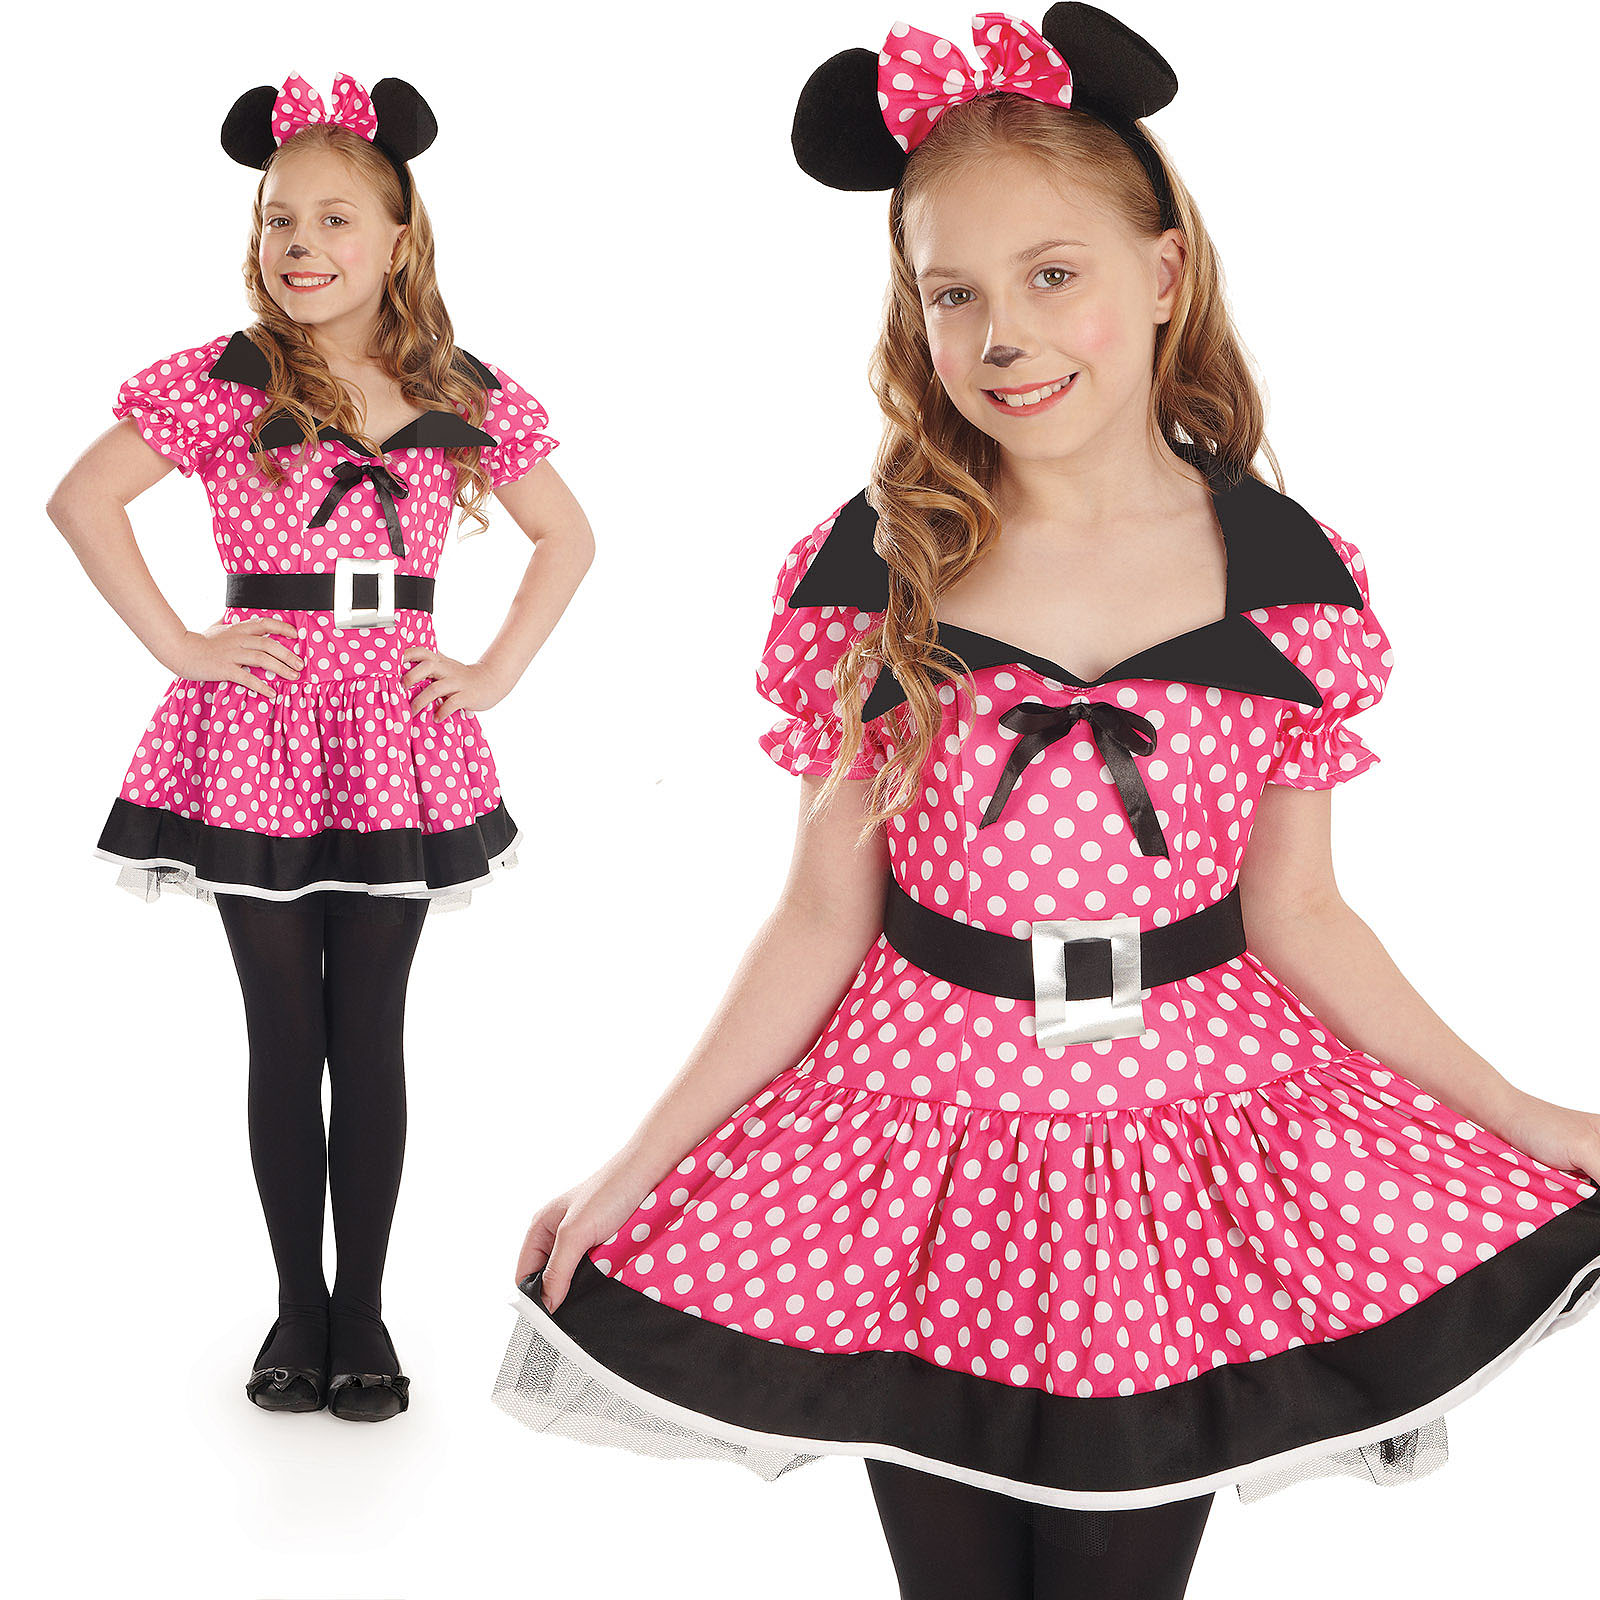 Childrens-Minnie-Mouse-Fancy-Dress-Costume-Disney-Kids-Girls-Outfit-4-12-Yrs thumbnail 6